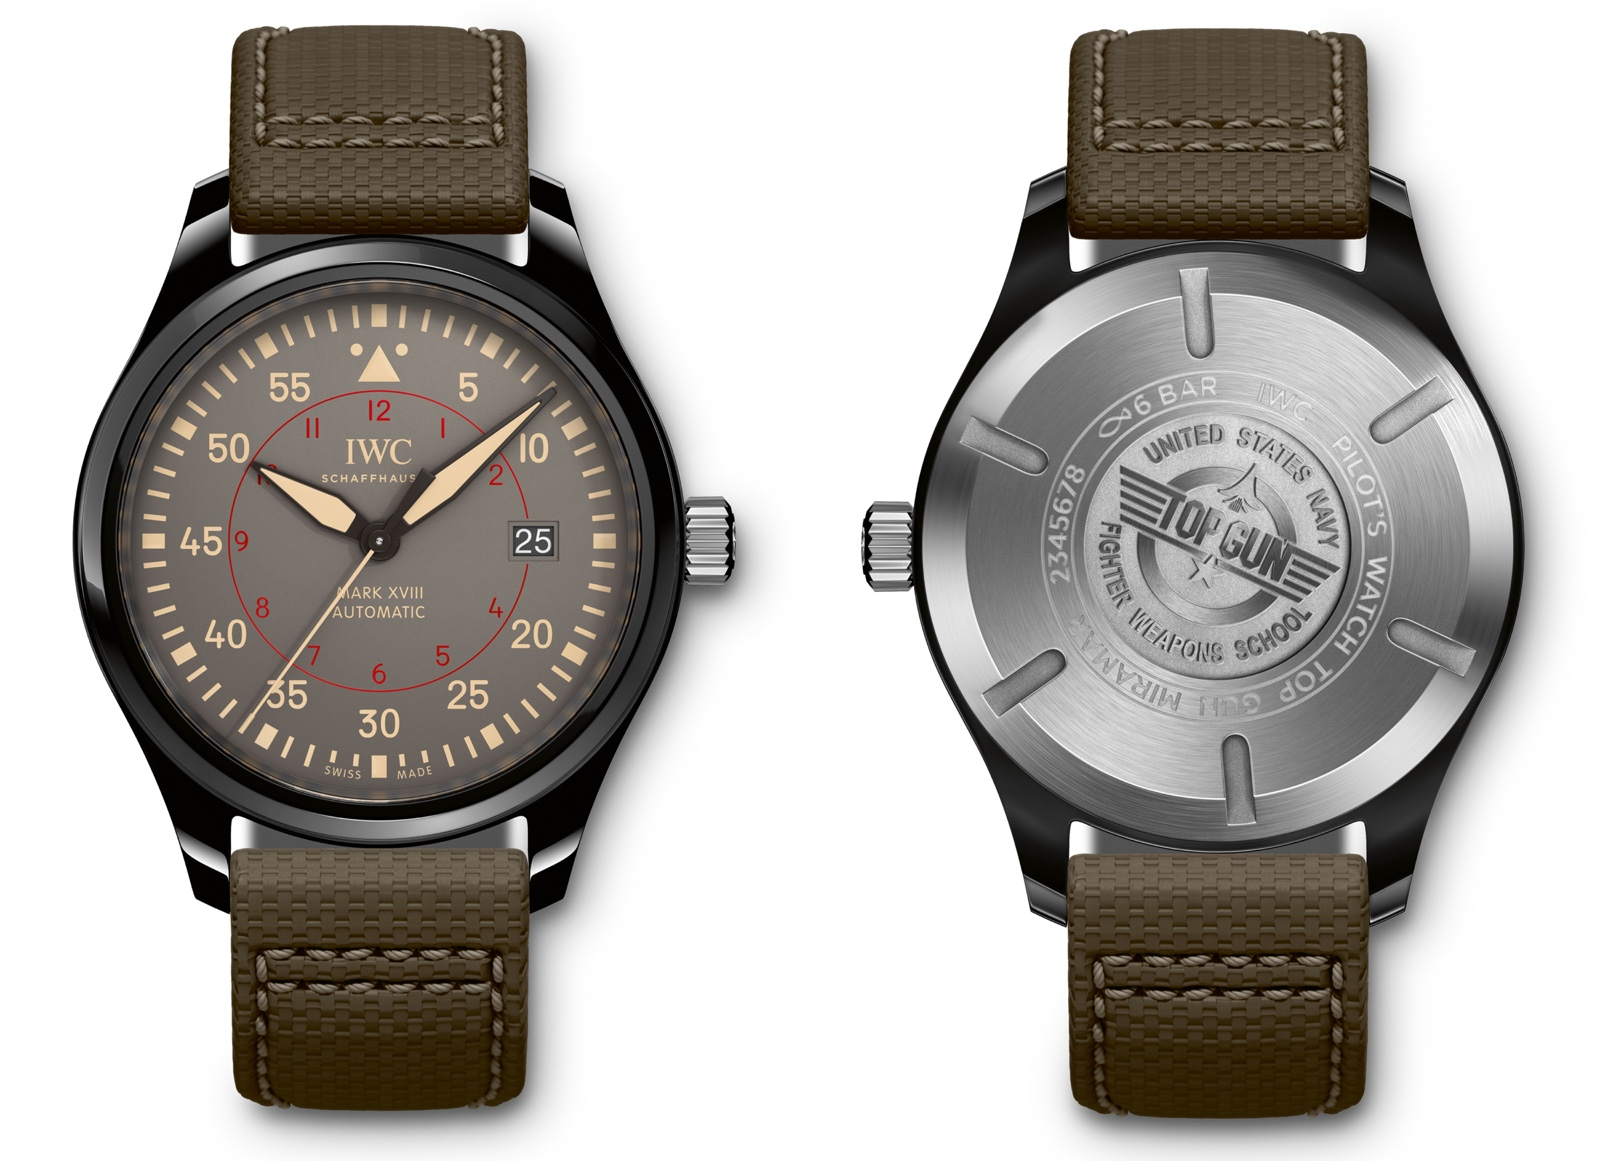 IWC 2016 Pilot Watch Mark XVIII Top Gun Miramar